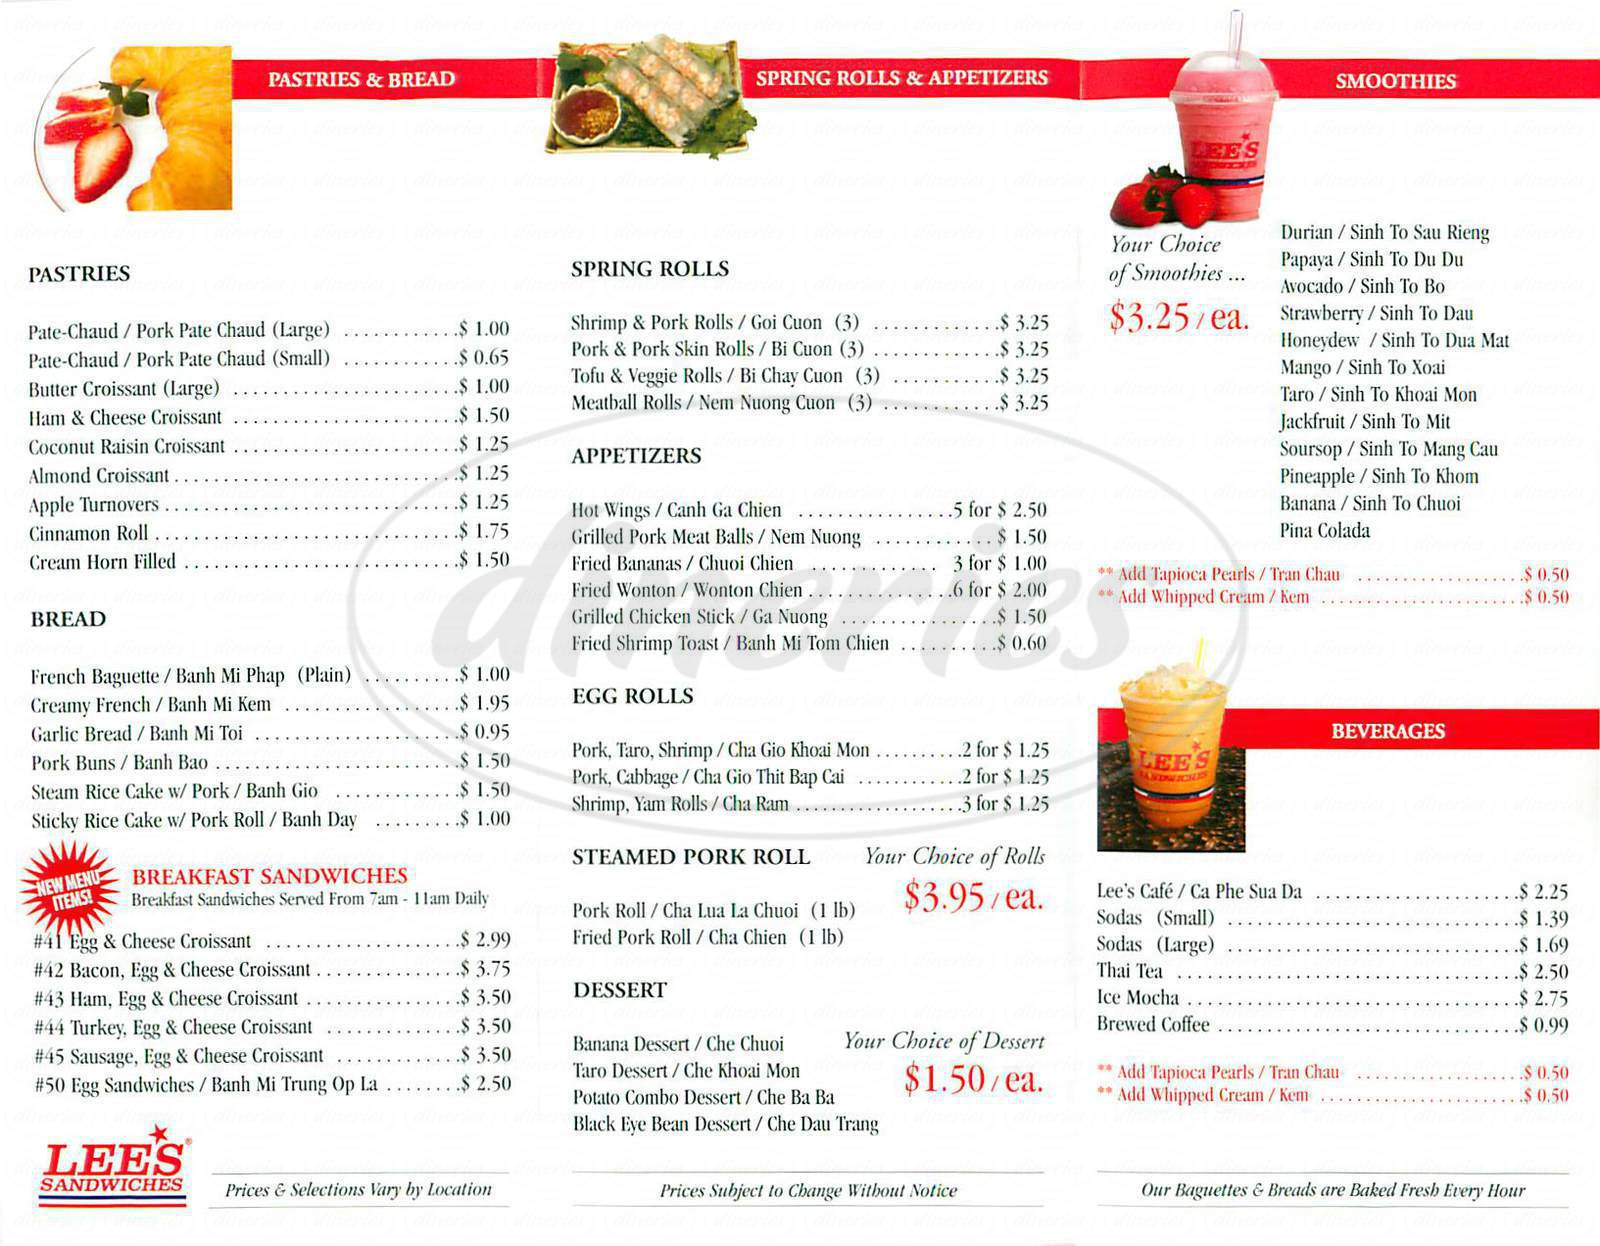 menu for Lee's Sandwiches